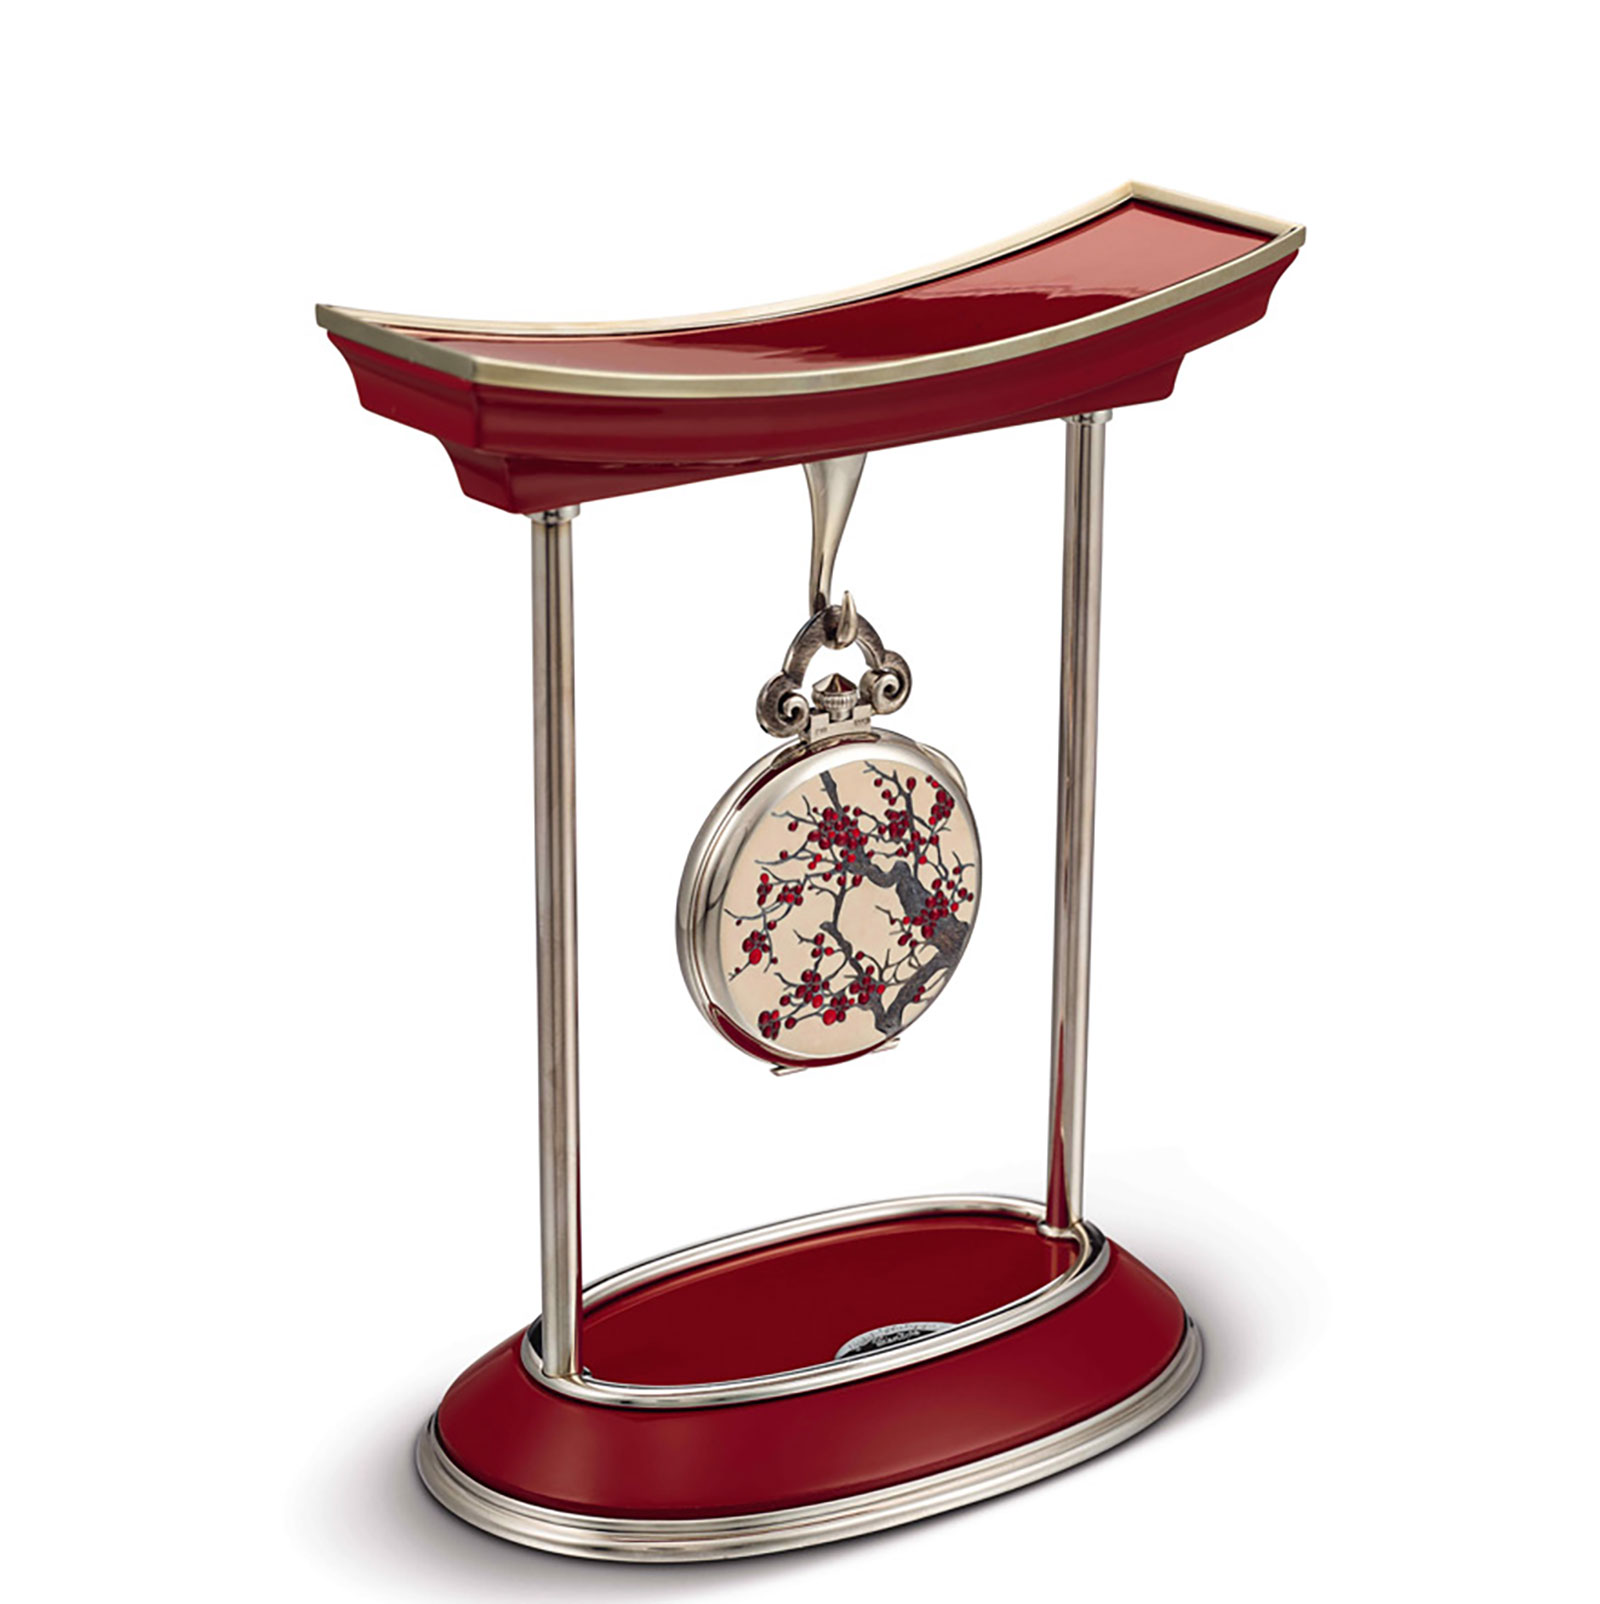 Patek Philippe Japanese Cherry pocket watch stand